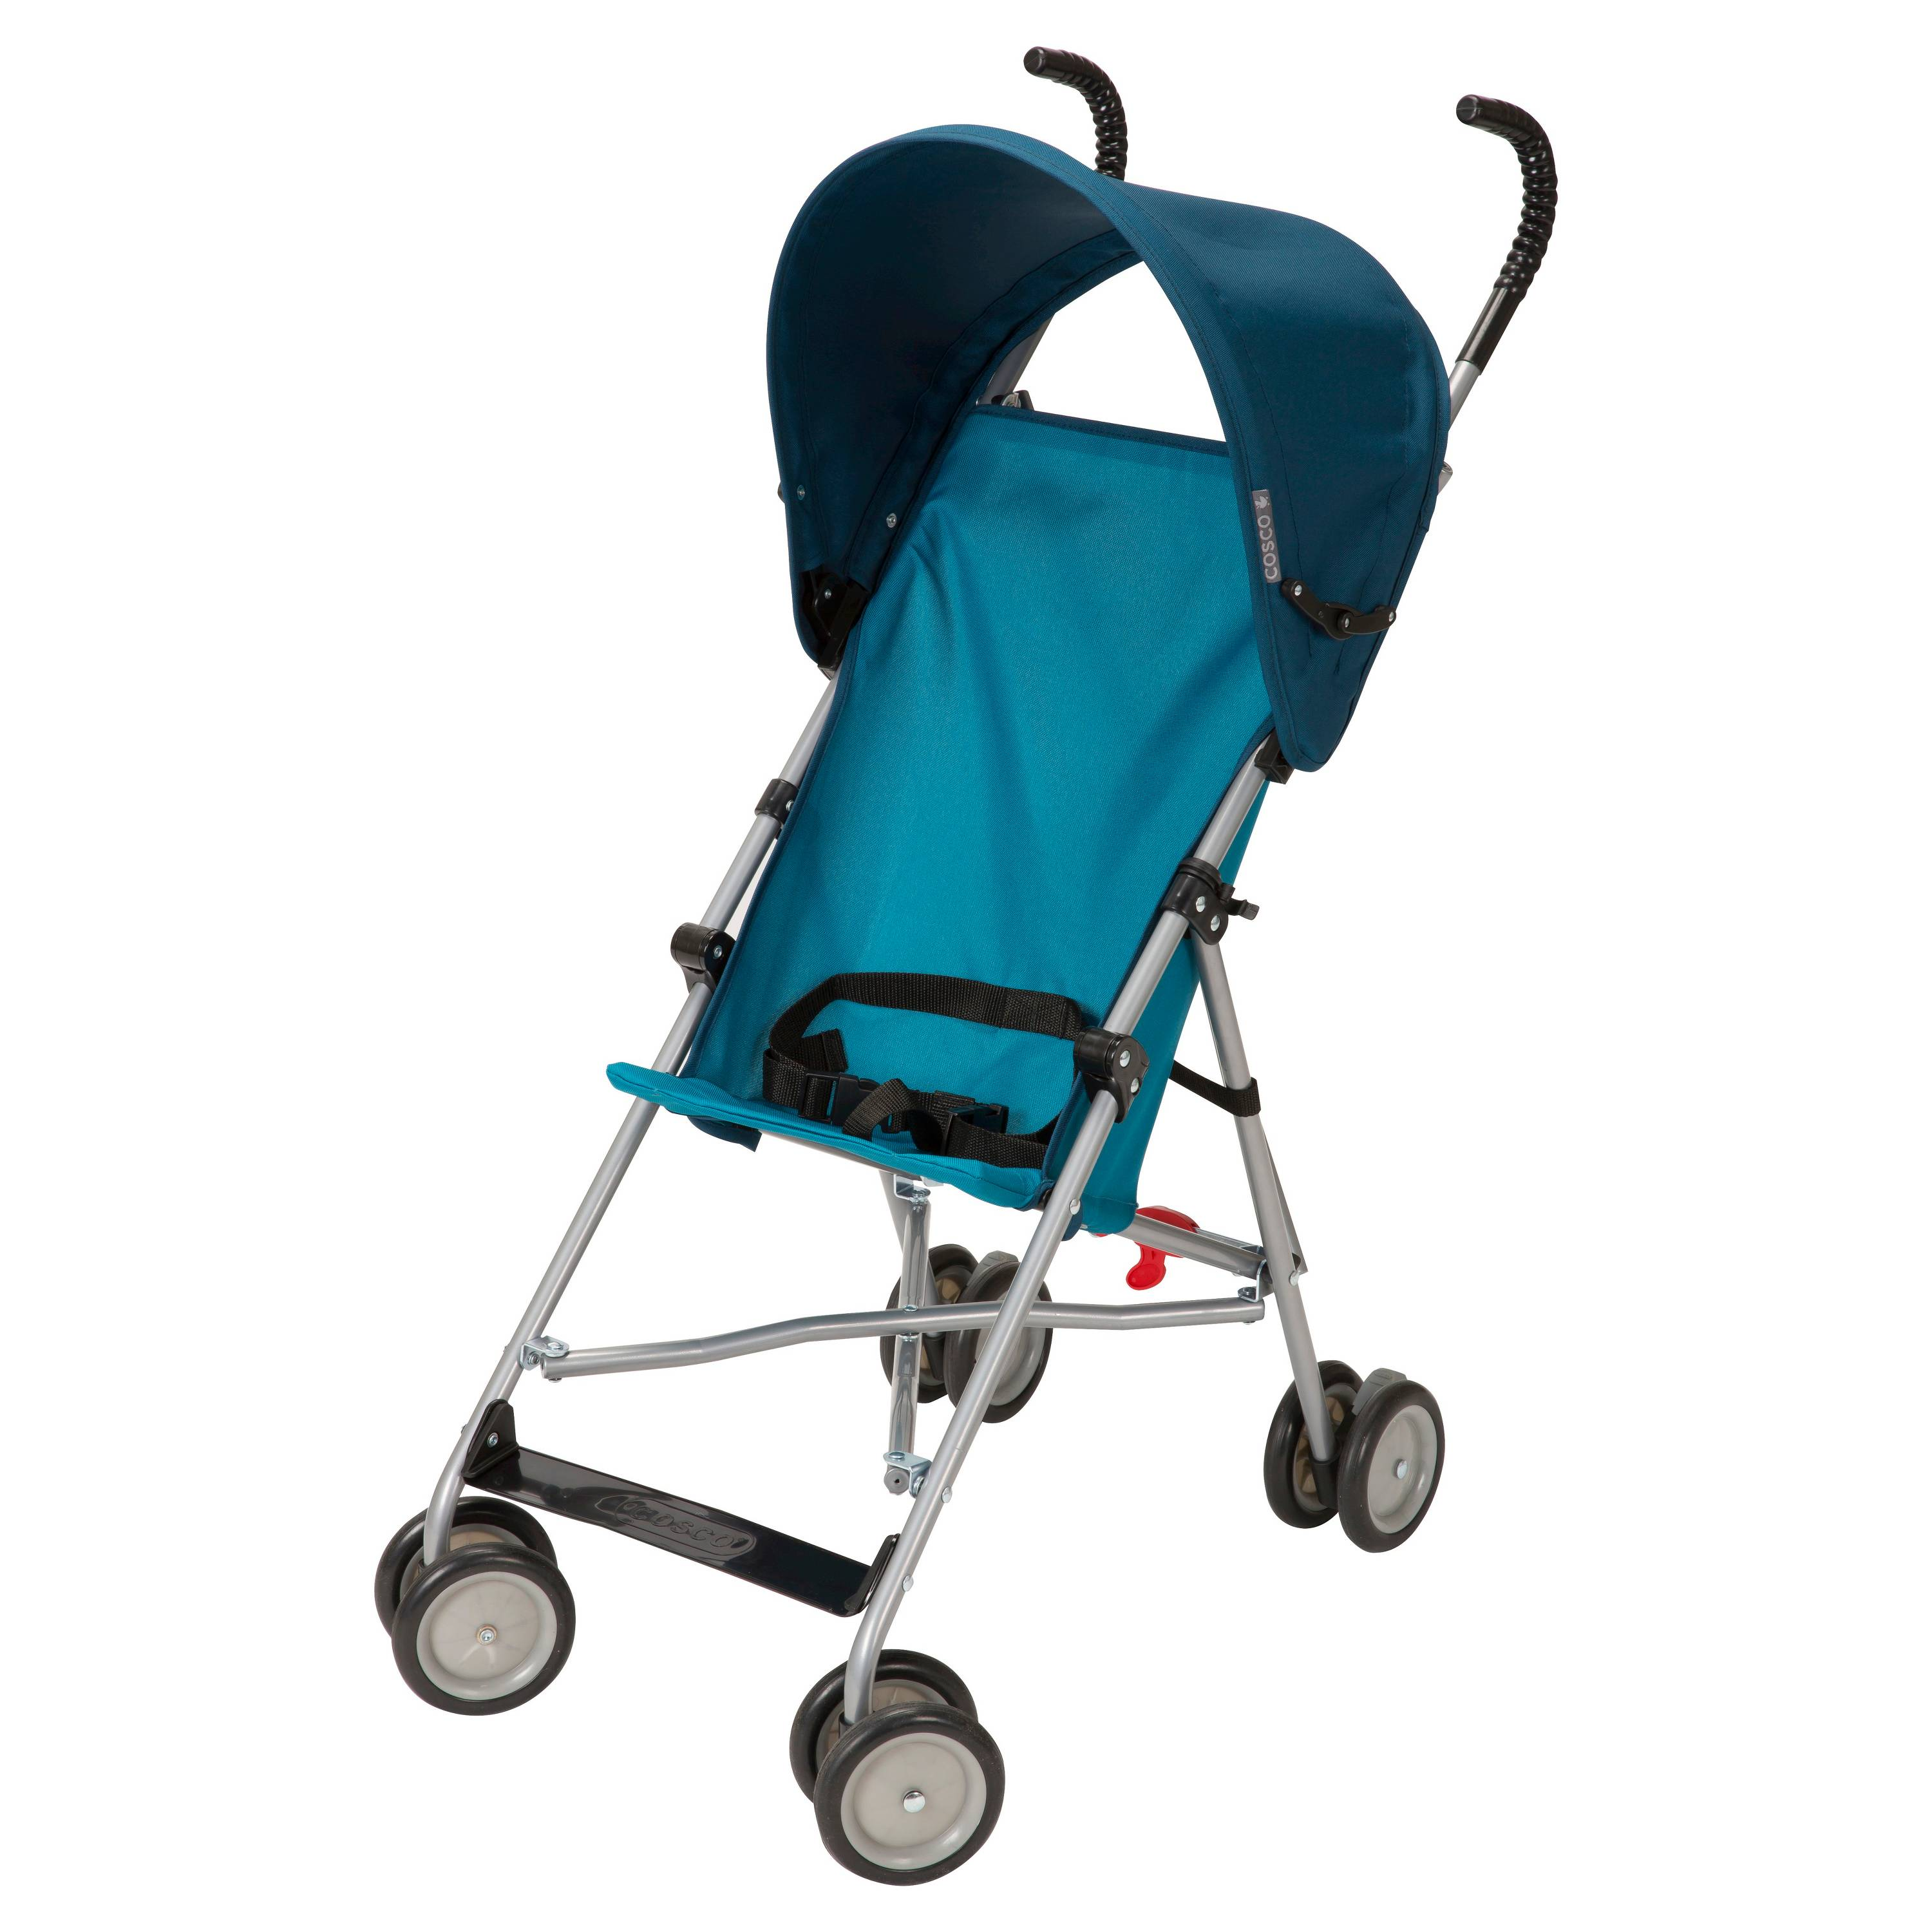 Newborn Umbrella Stroller Best Umbrella Strollers